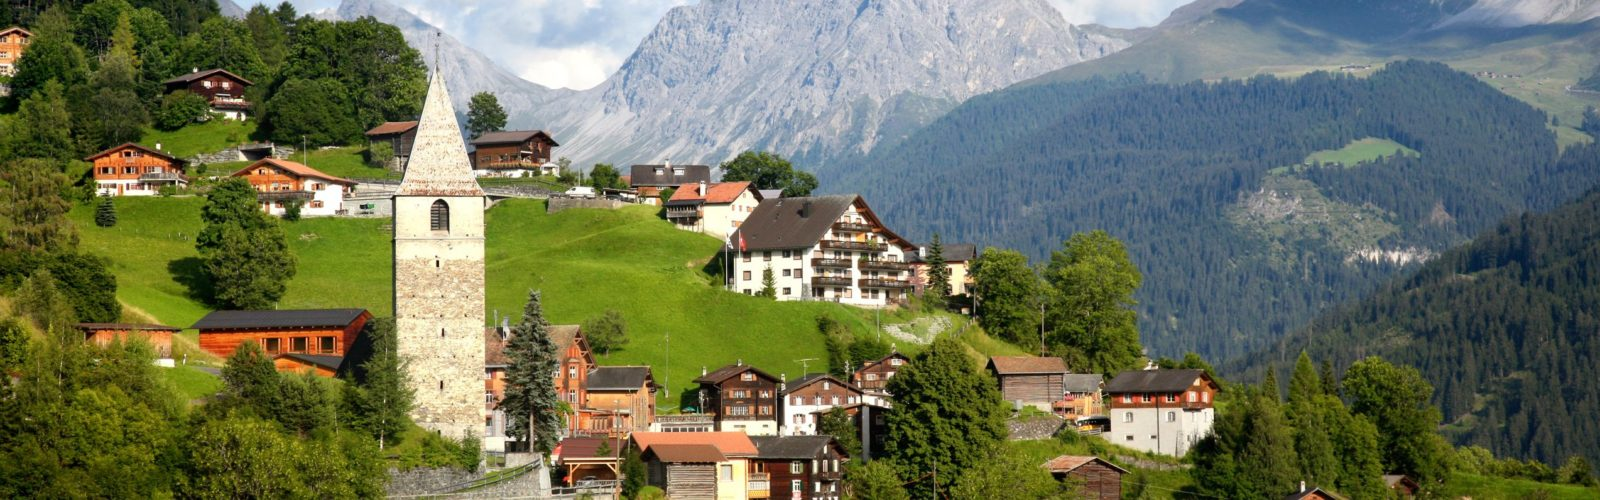 gstaad-town-and-mountains